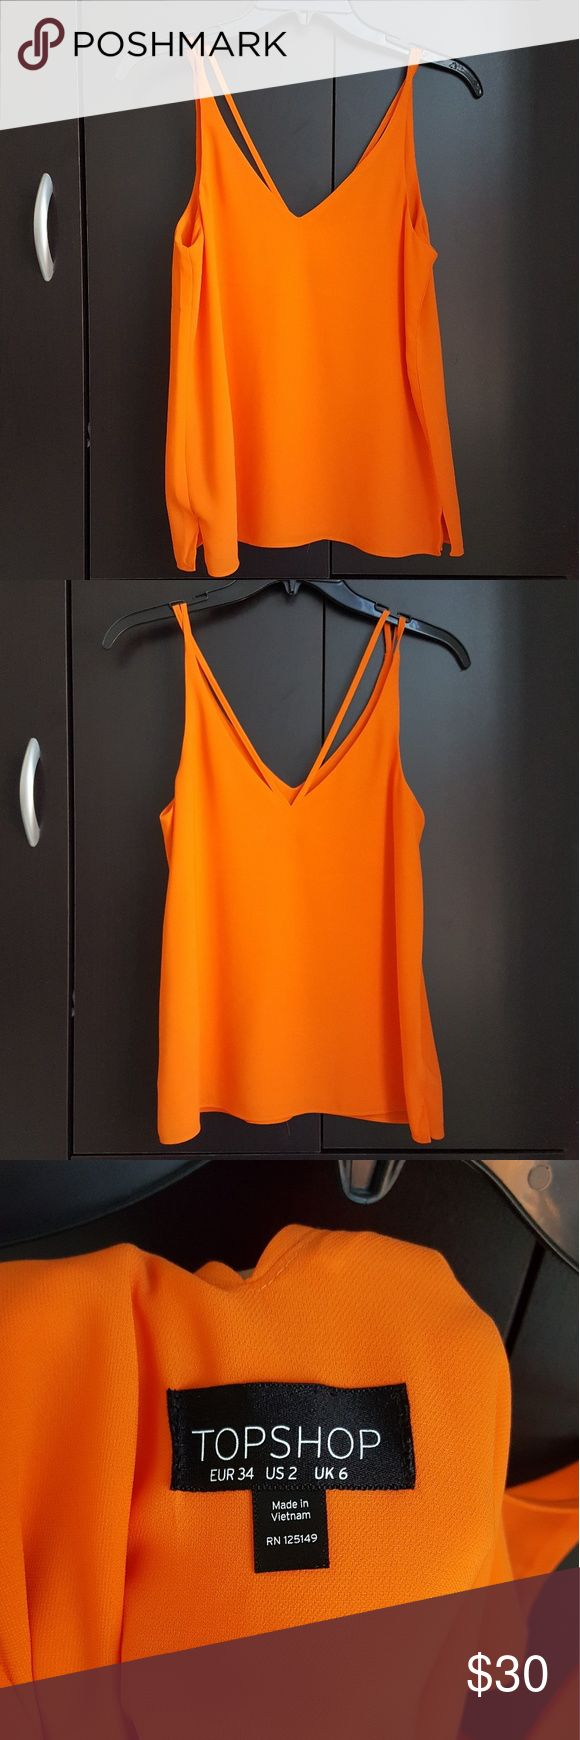 Topshop Orange V neck Strappy Cami - size us 2 Worn one, excellent condition. 100% polyester. Topshop Tops Camisoles